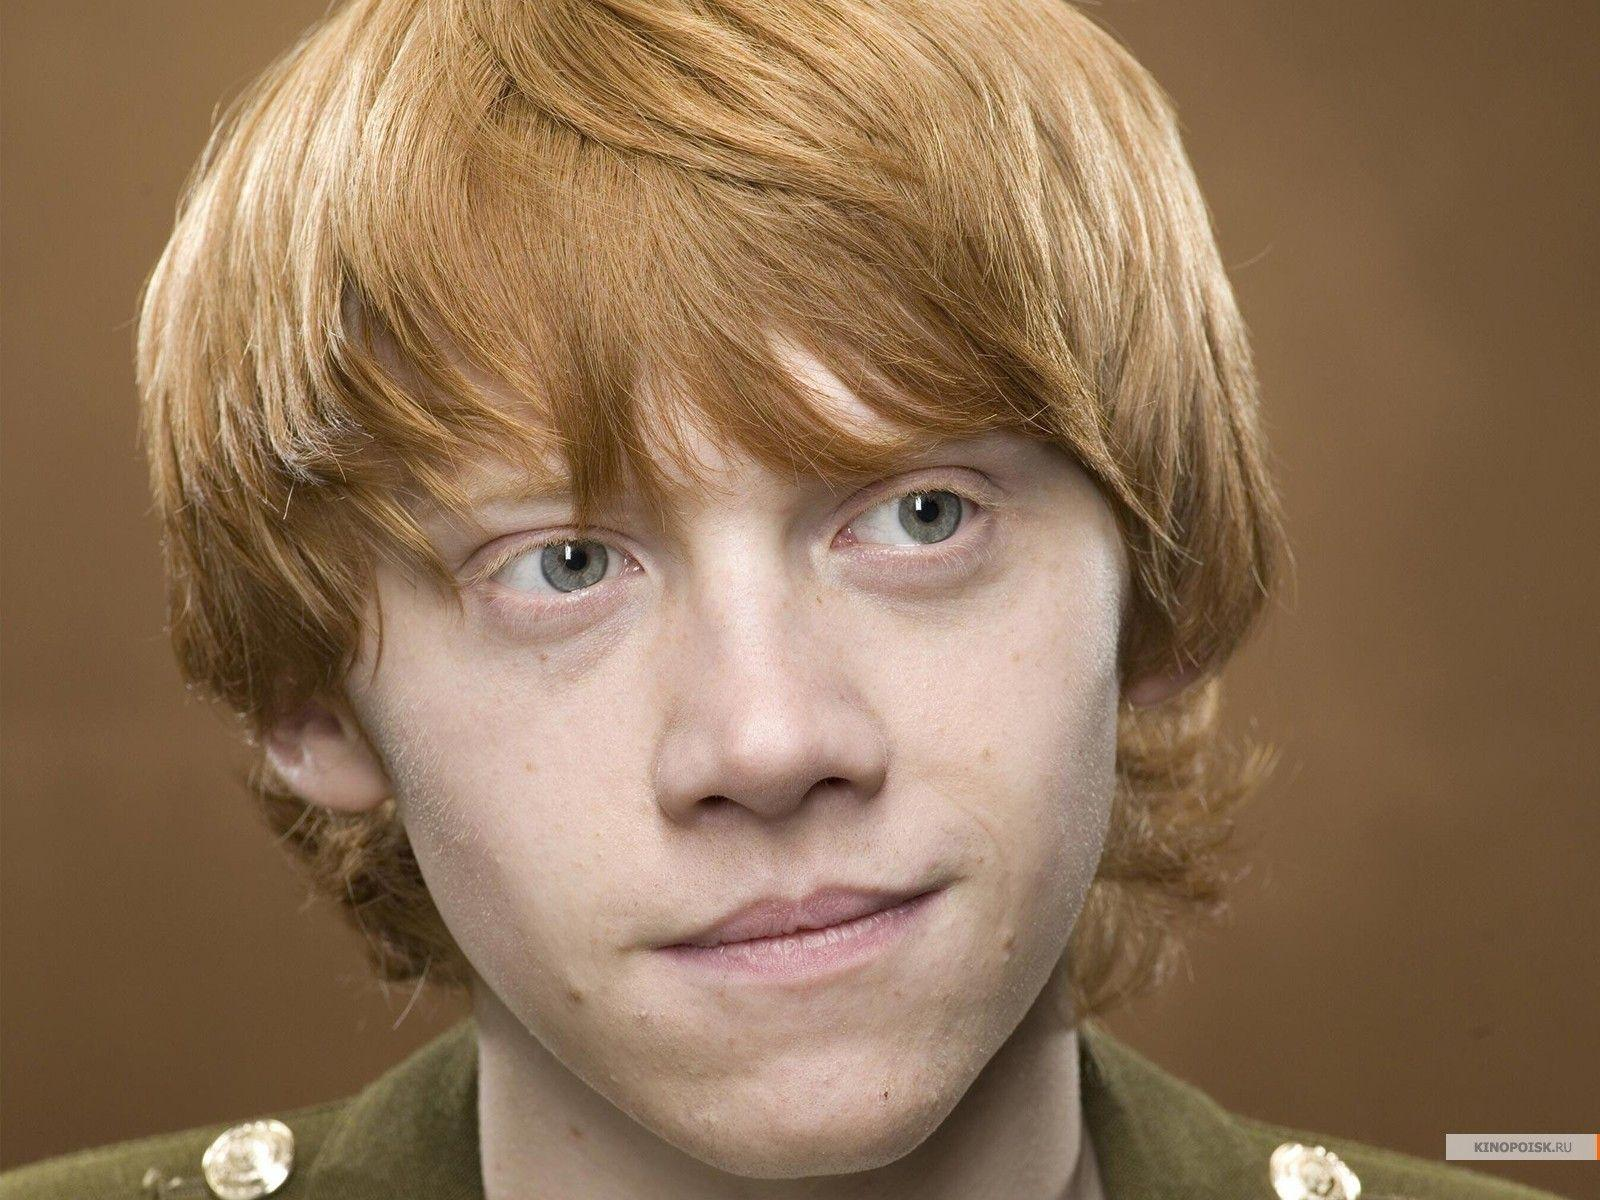 Rupert Grint Wallpaper 92 80295 High Definition Wallpapers| wallalay.